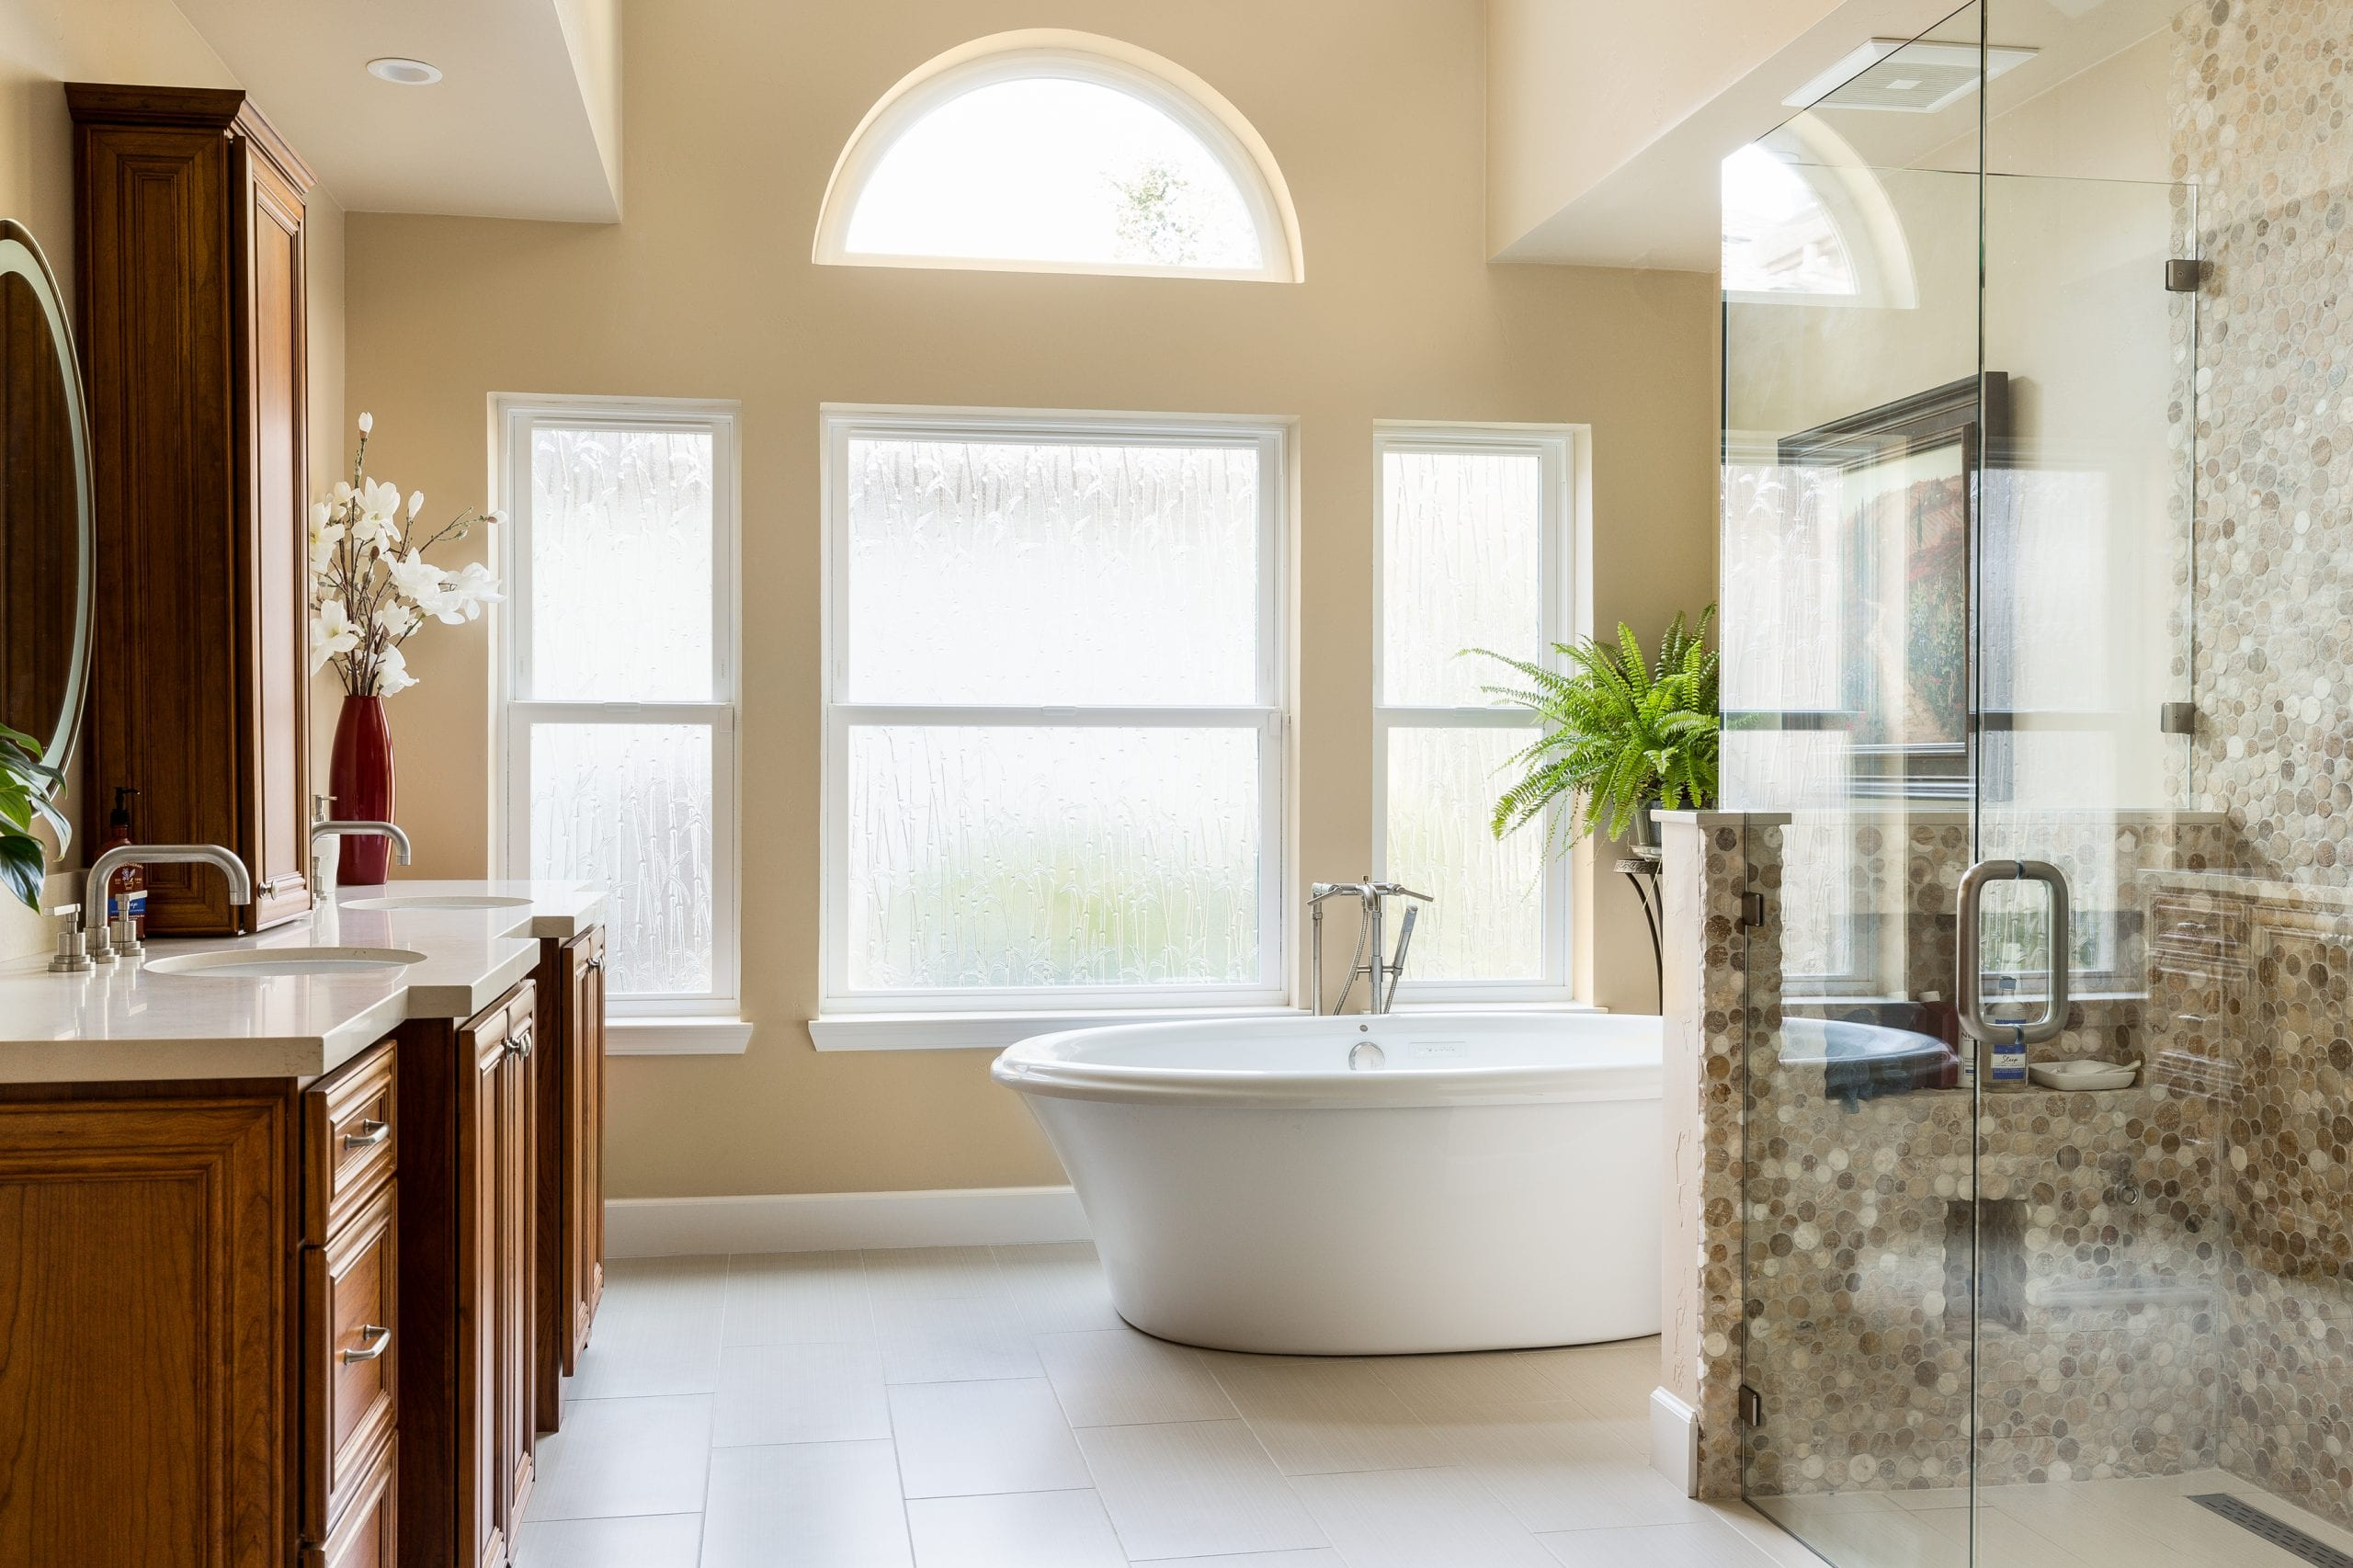 Stand alone tub in front of windows